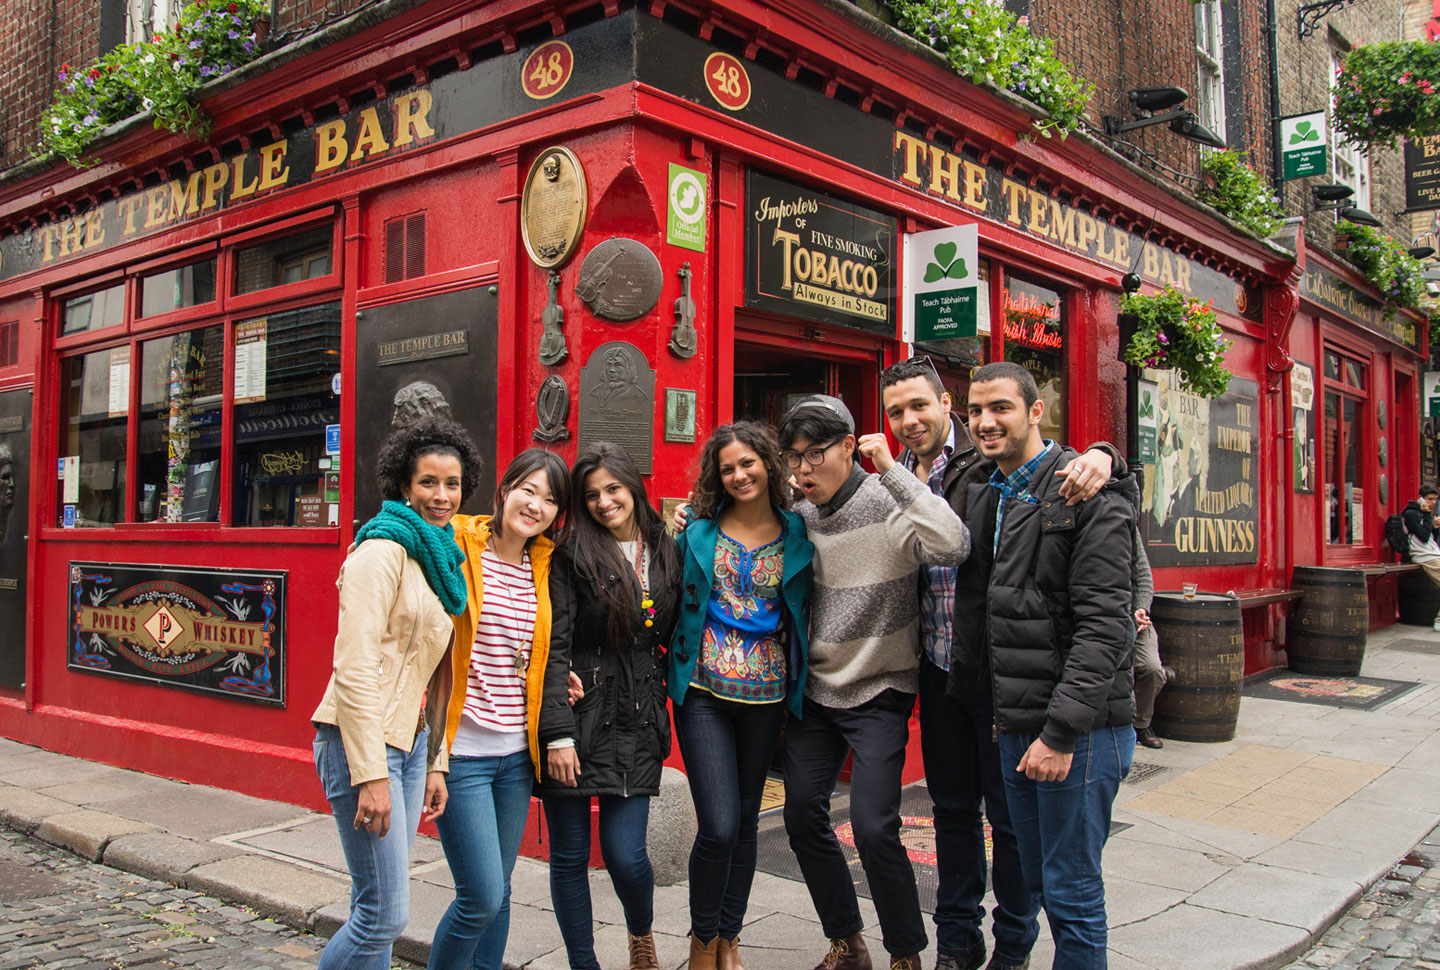 Sprachschule Dublin Temple Bar